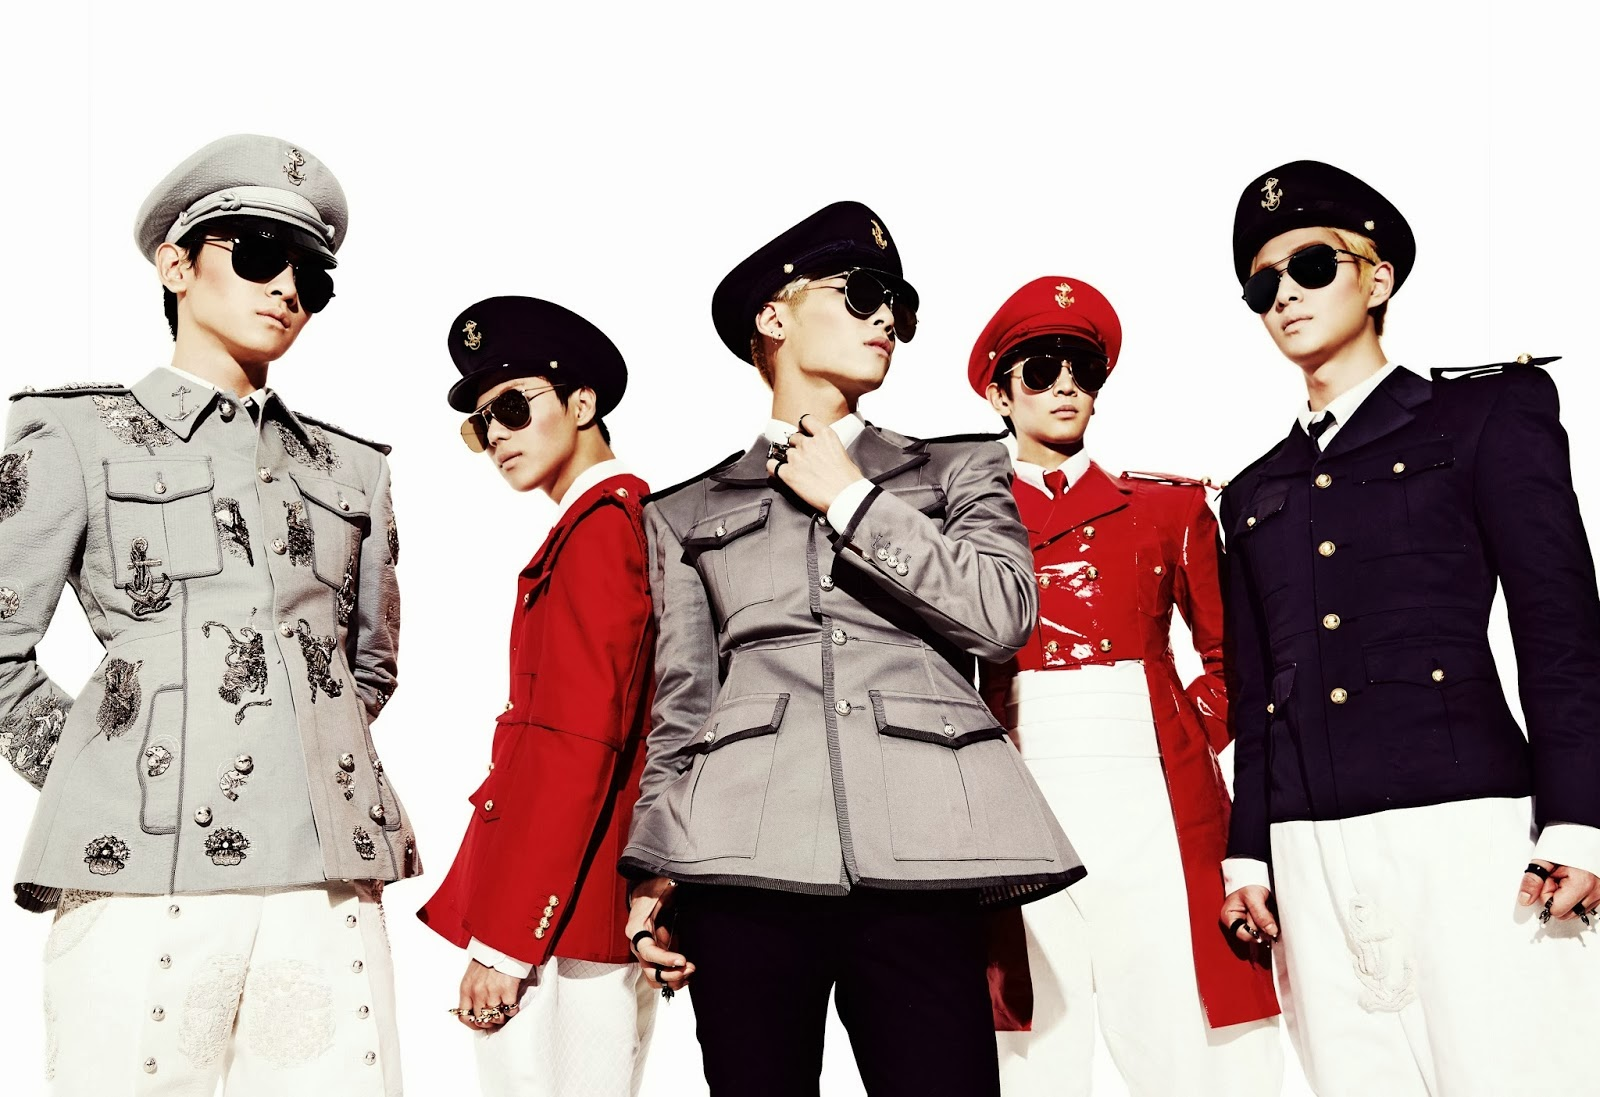 My little world: Everybody wake up because SHINee's back!!